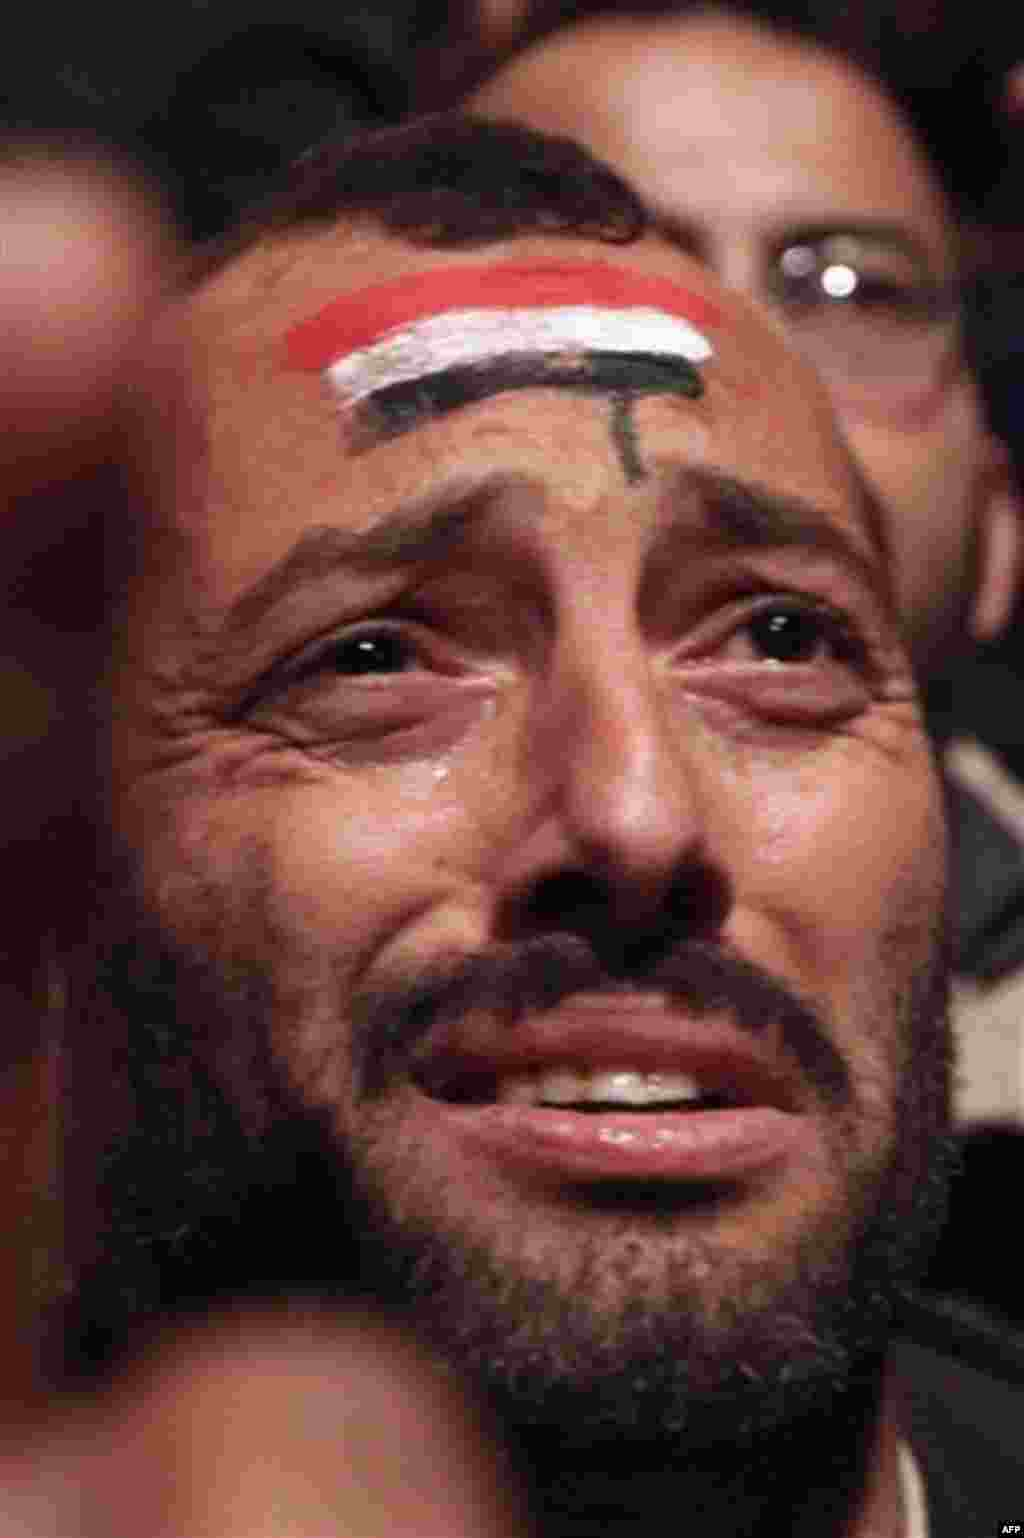 A protester is overcome by emotion as he and others prematurely celebrate prior to the televised speech of Egyptian President Hosni Mubarak, in which they believed he would step down, at the continuing anti-government demonstration in Cairo, Egypt Thursda